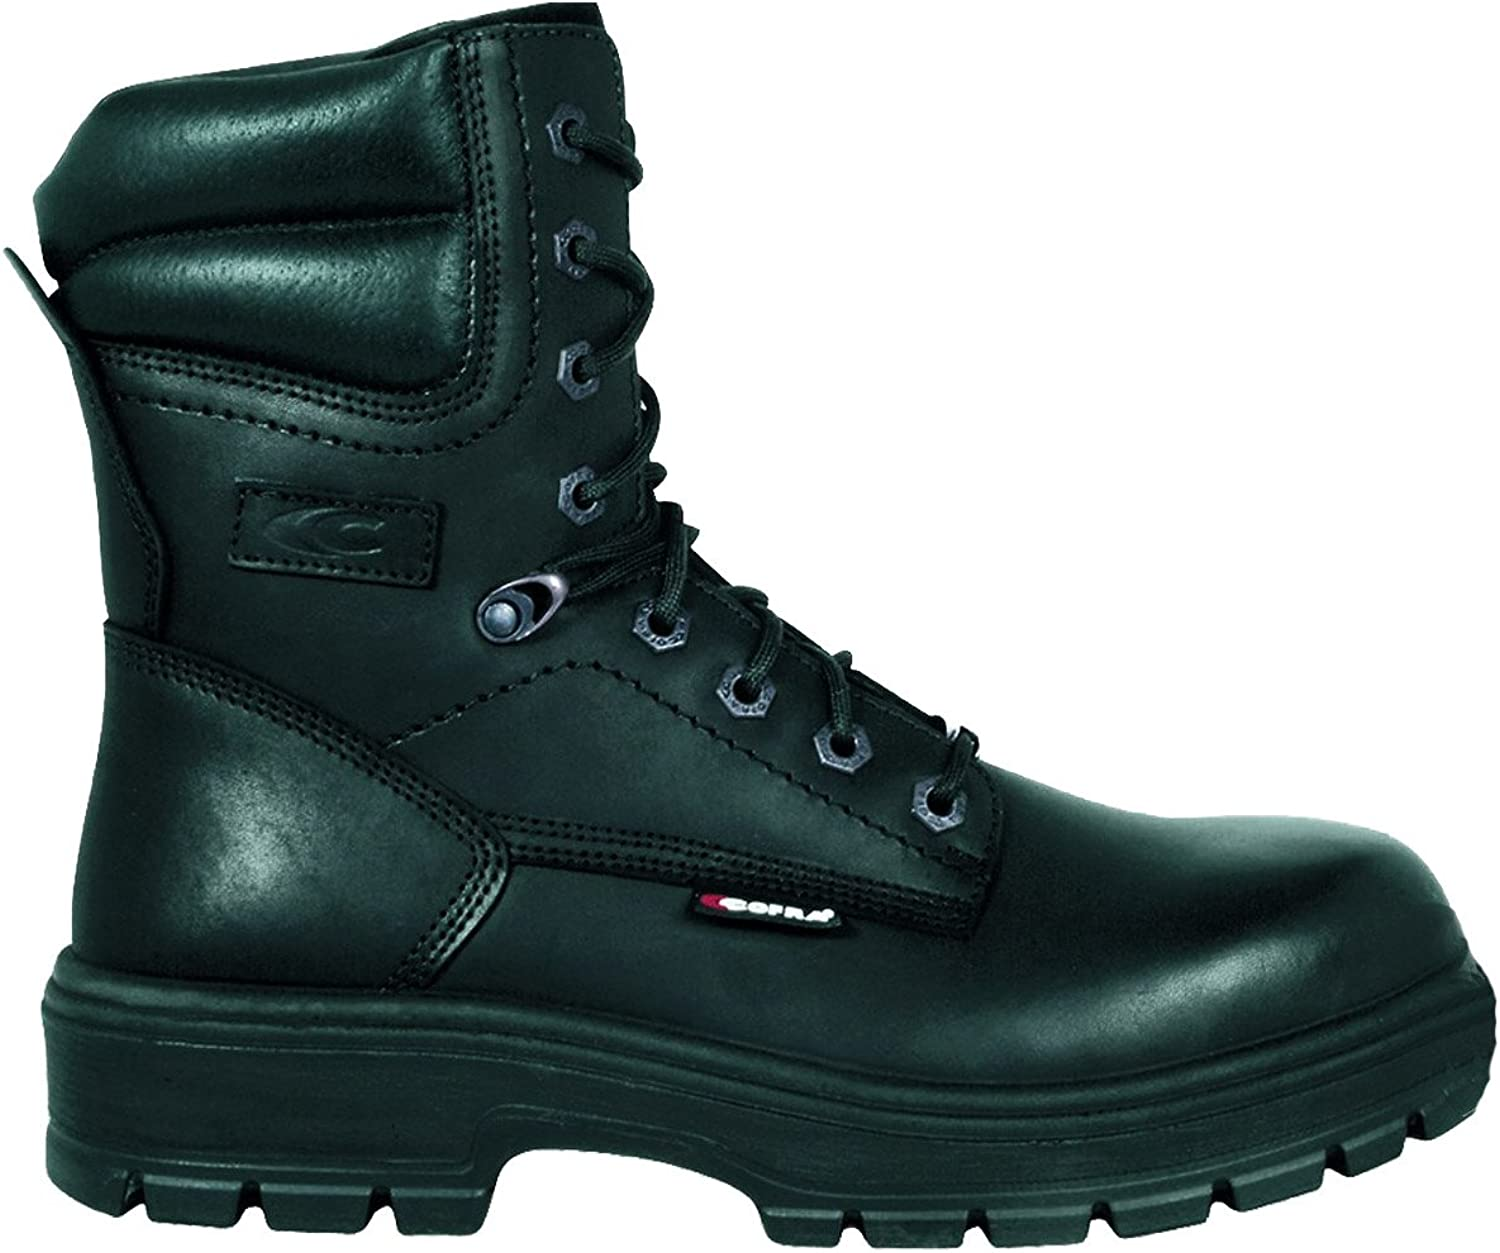 Cofra 82261-005.W46 Size 46 S3 CI HRO SRC Flint  Safety shoes - Black